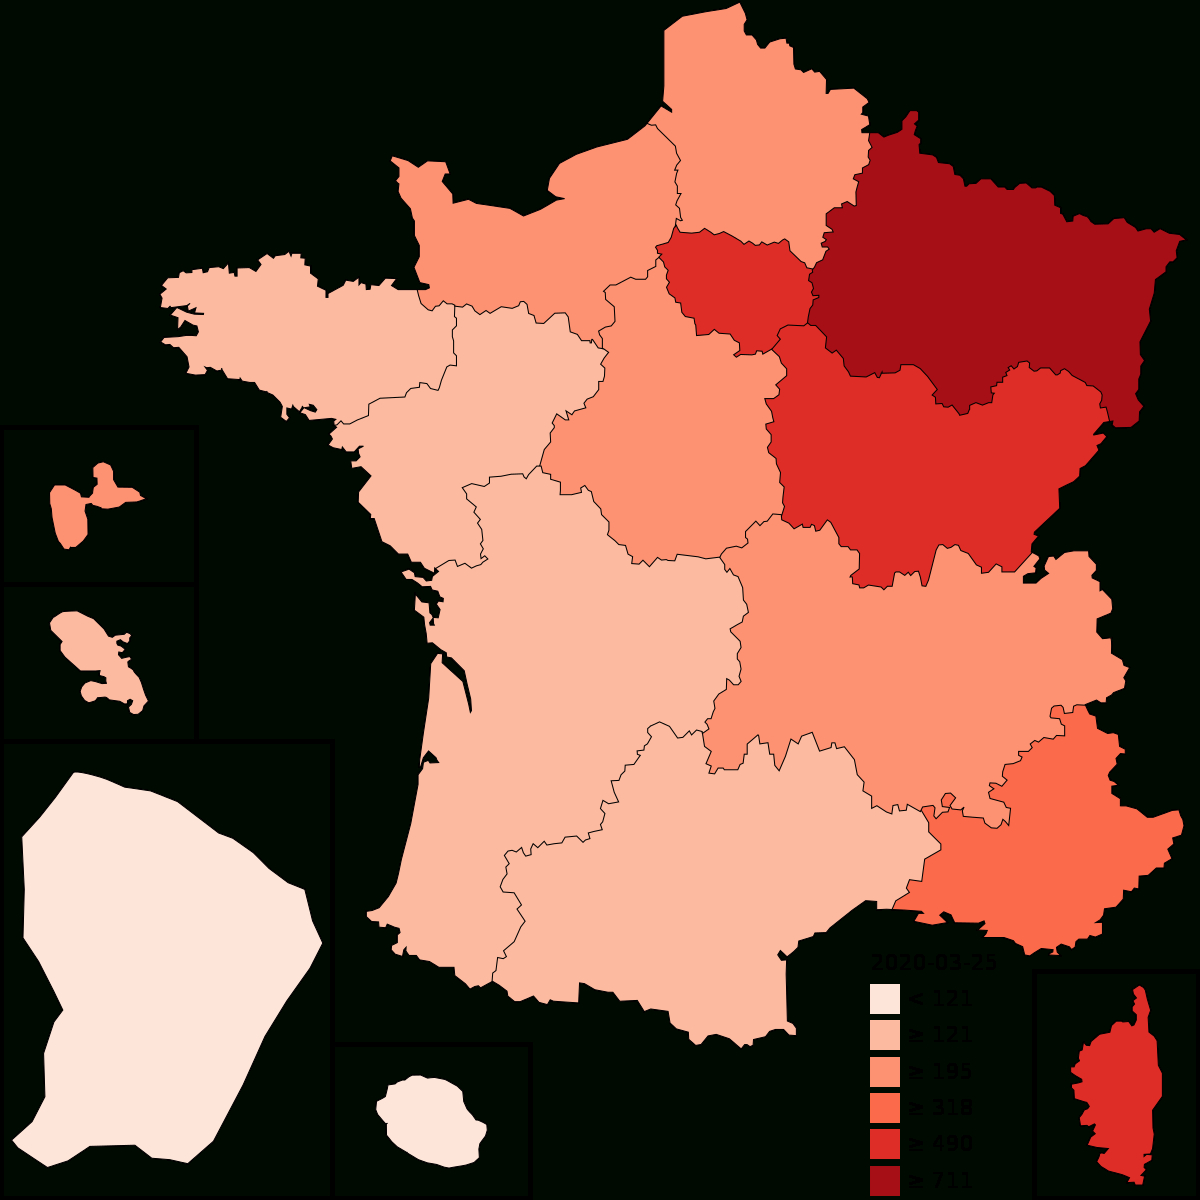 2020 Coronavirus Pandemic In France - Wikipedia intérieur Departement Francais 39